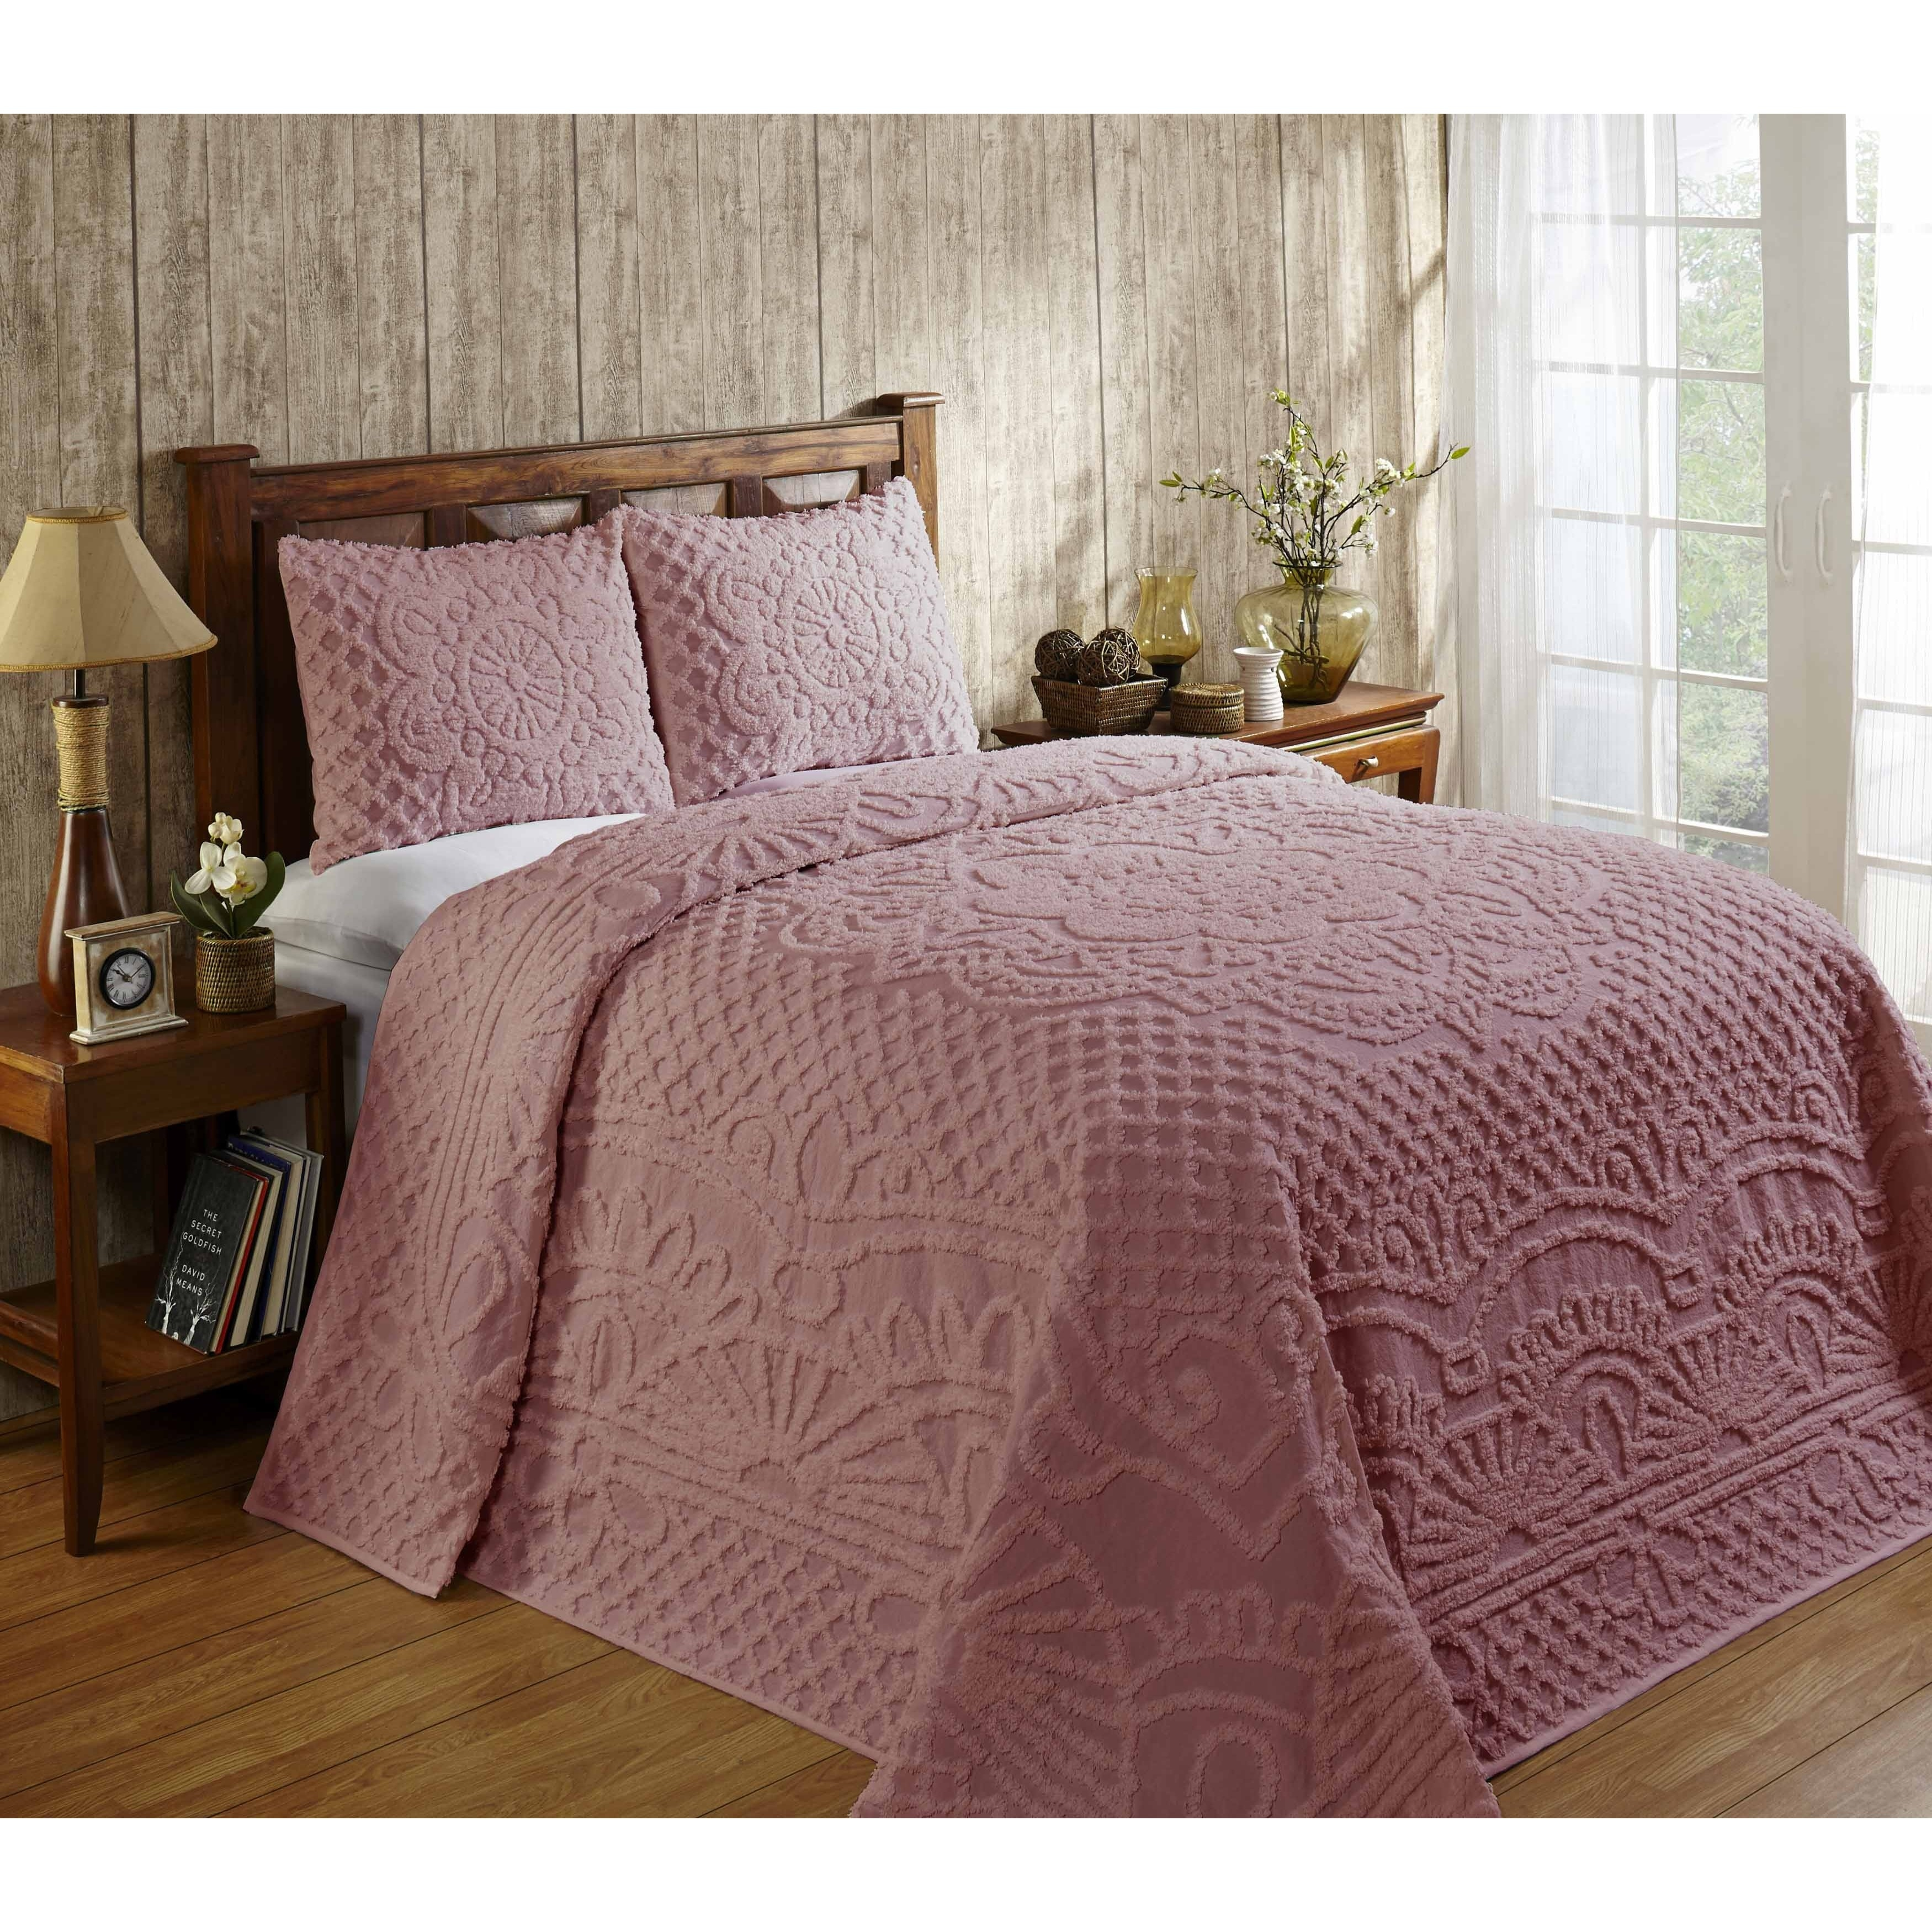 free product floral bath purple shipping quilt overseas bedding amrapur set overstock piece embroidered today